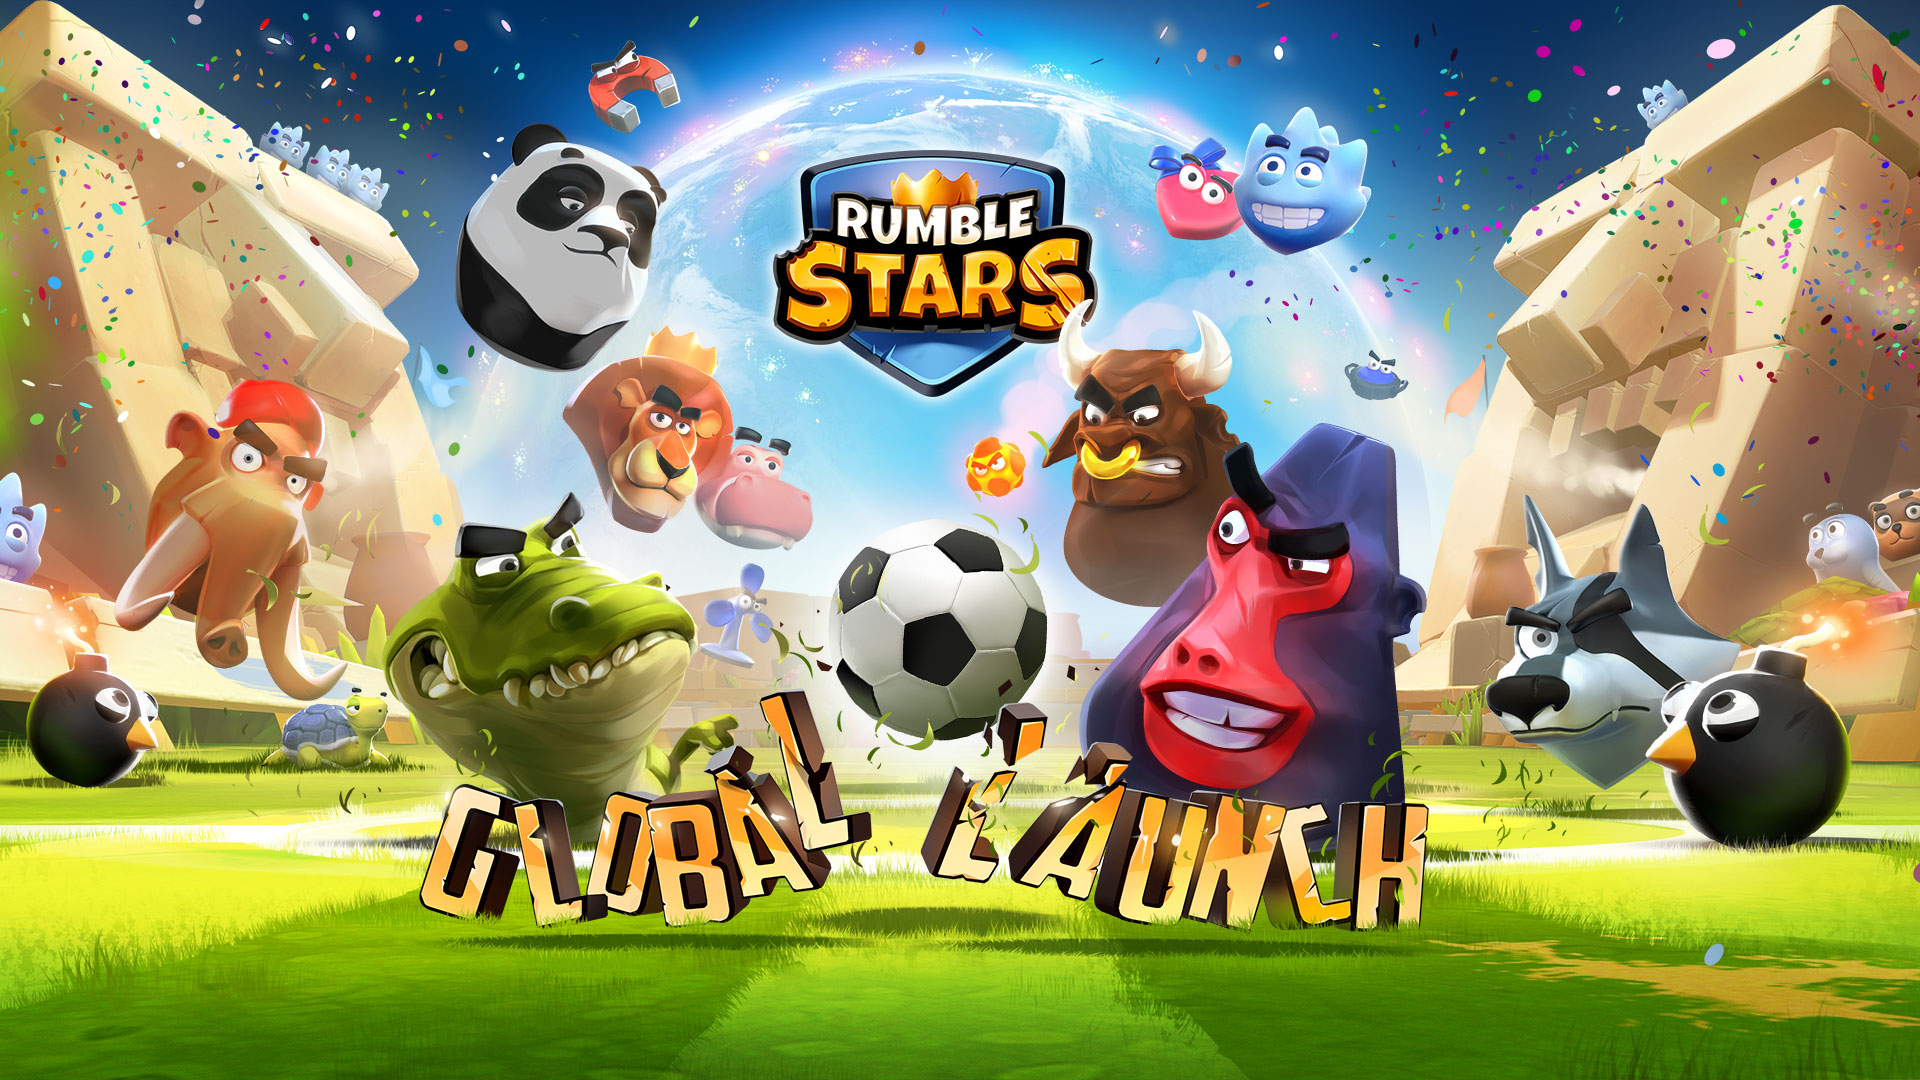 rumble-stars-global-launch